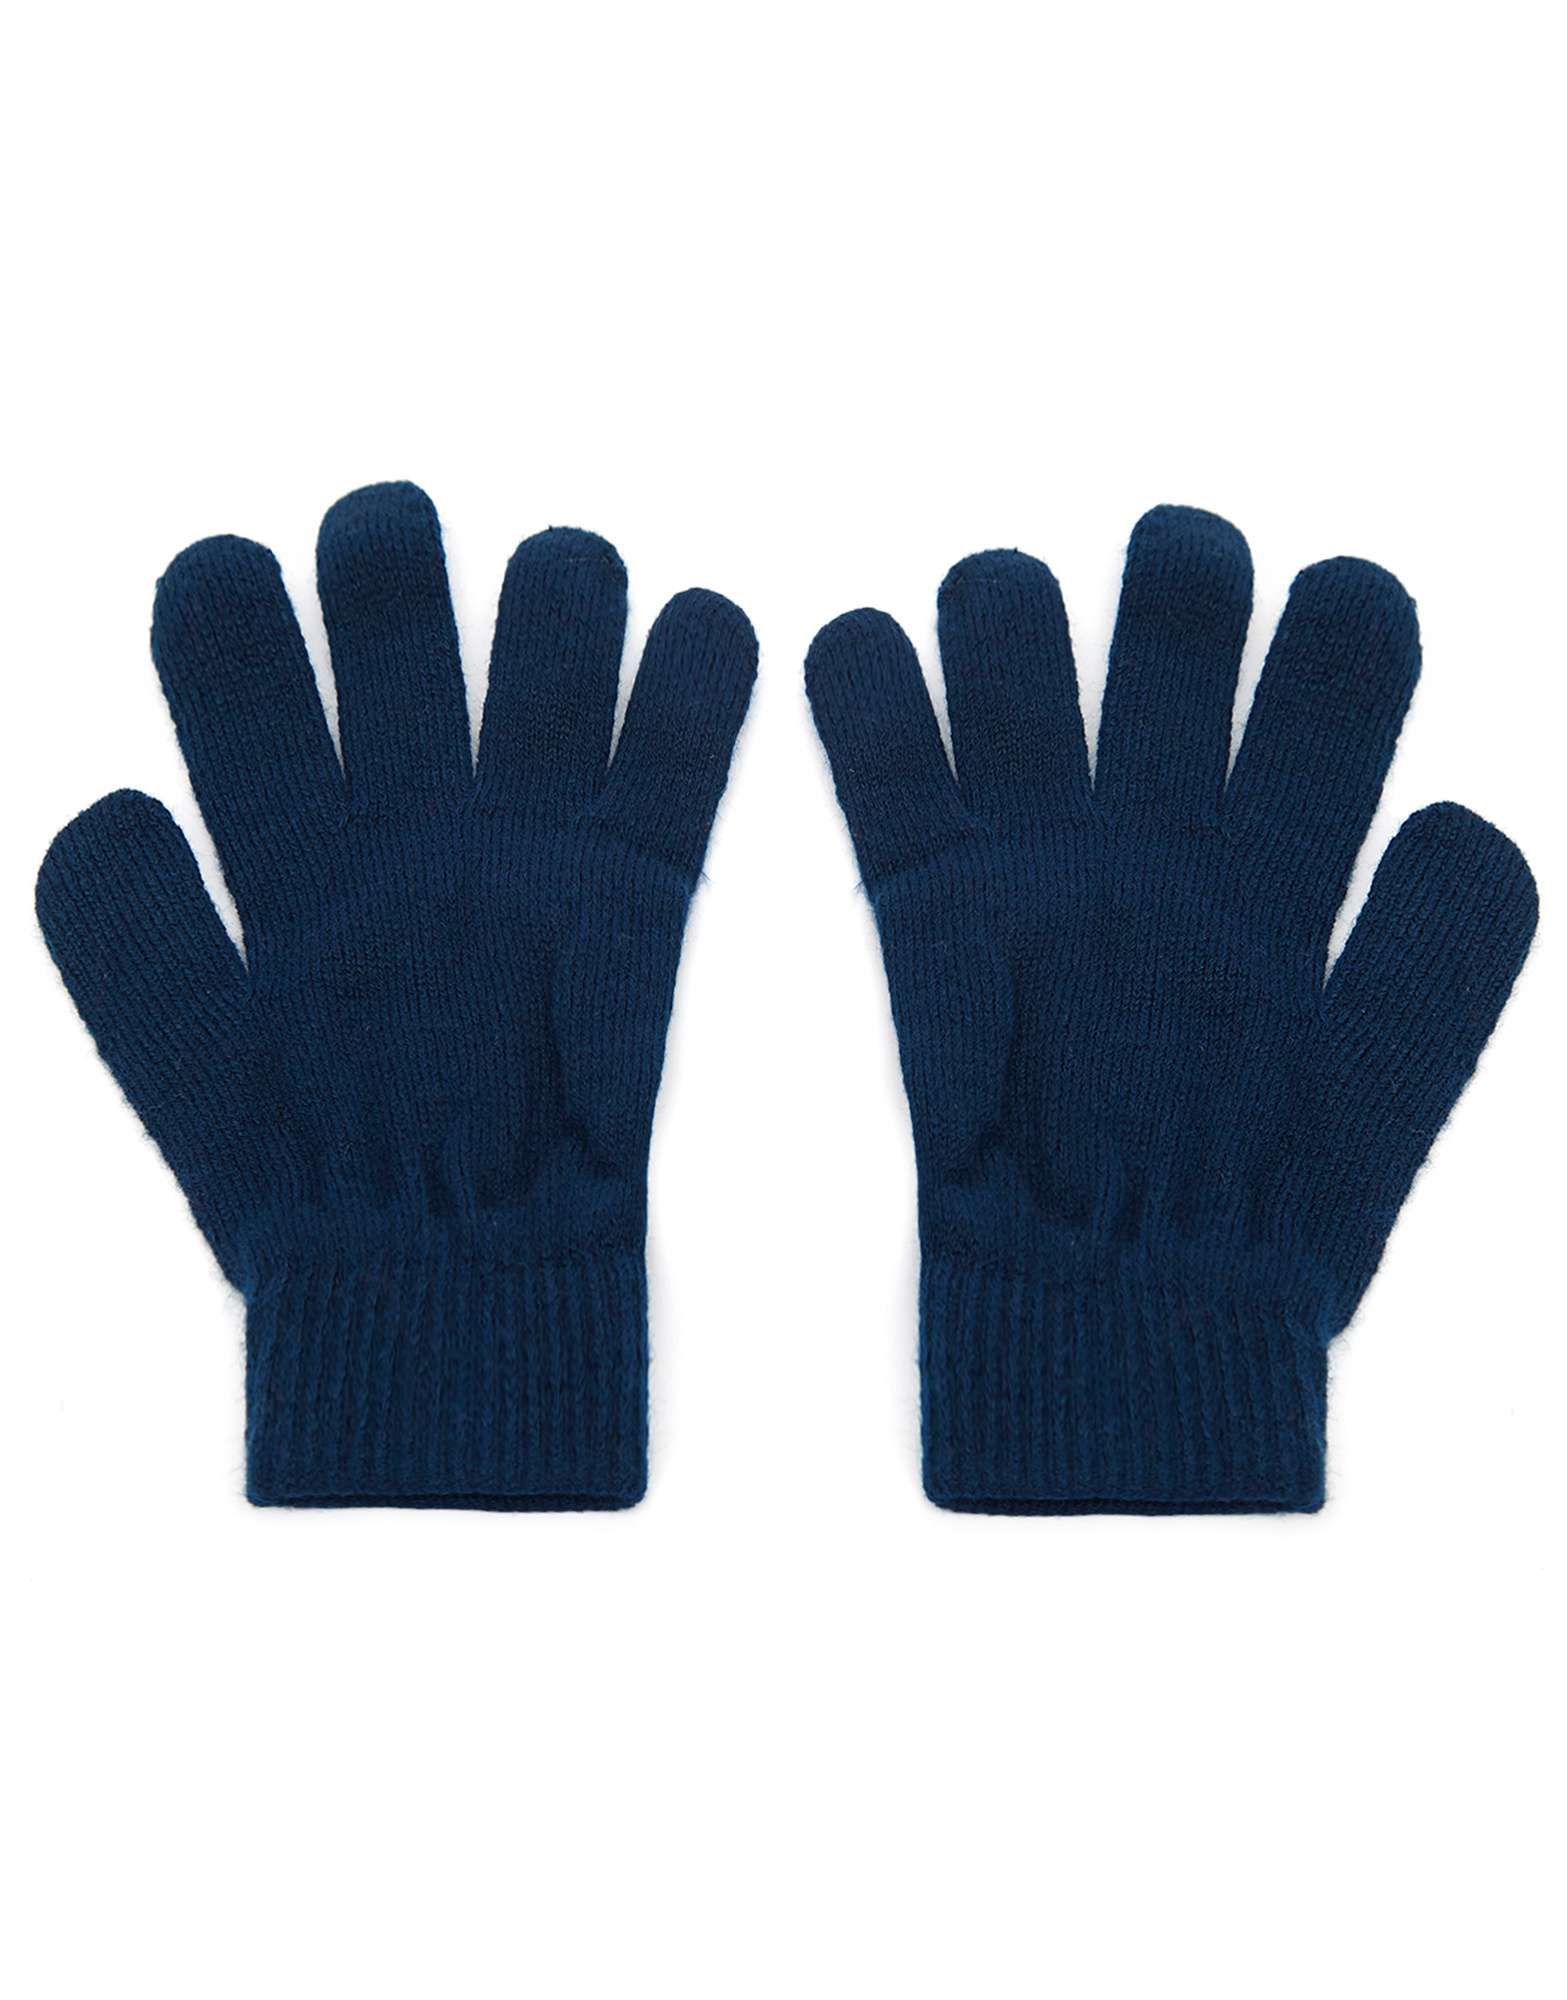 Official Team Chelsea FC Gloves